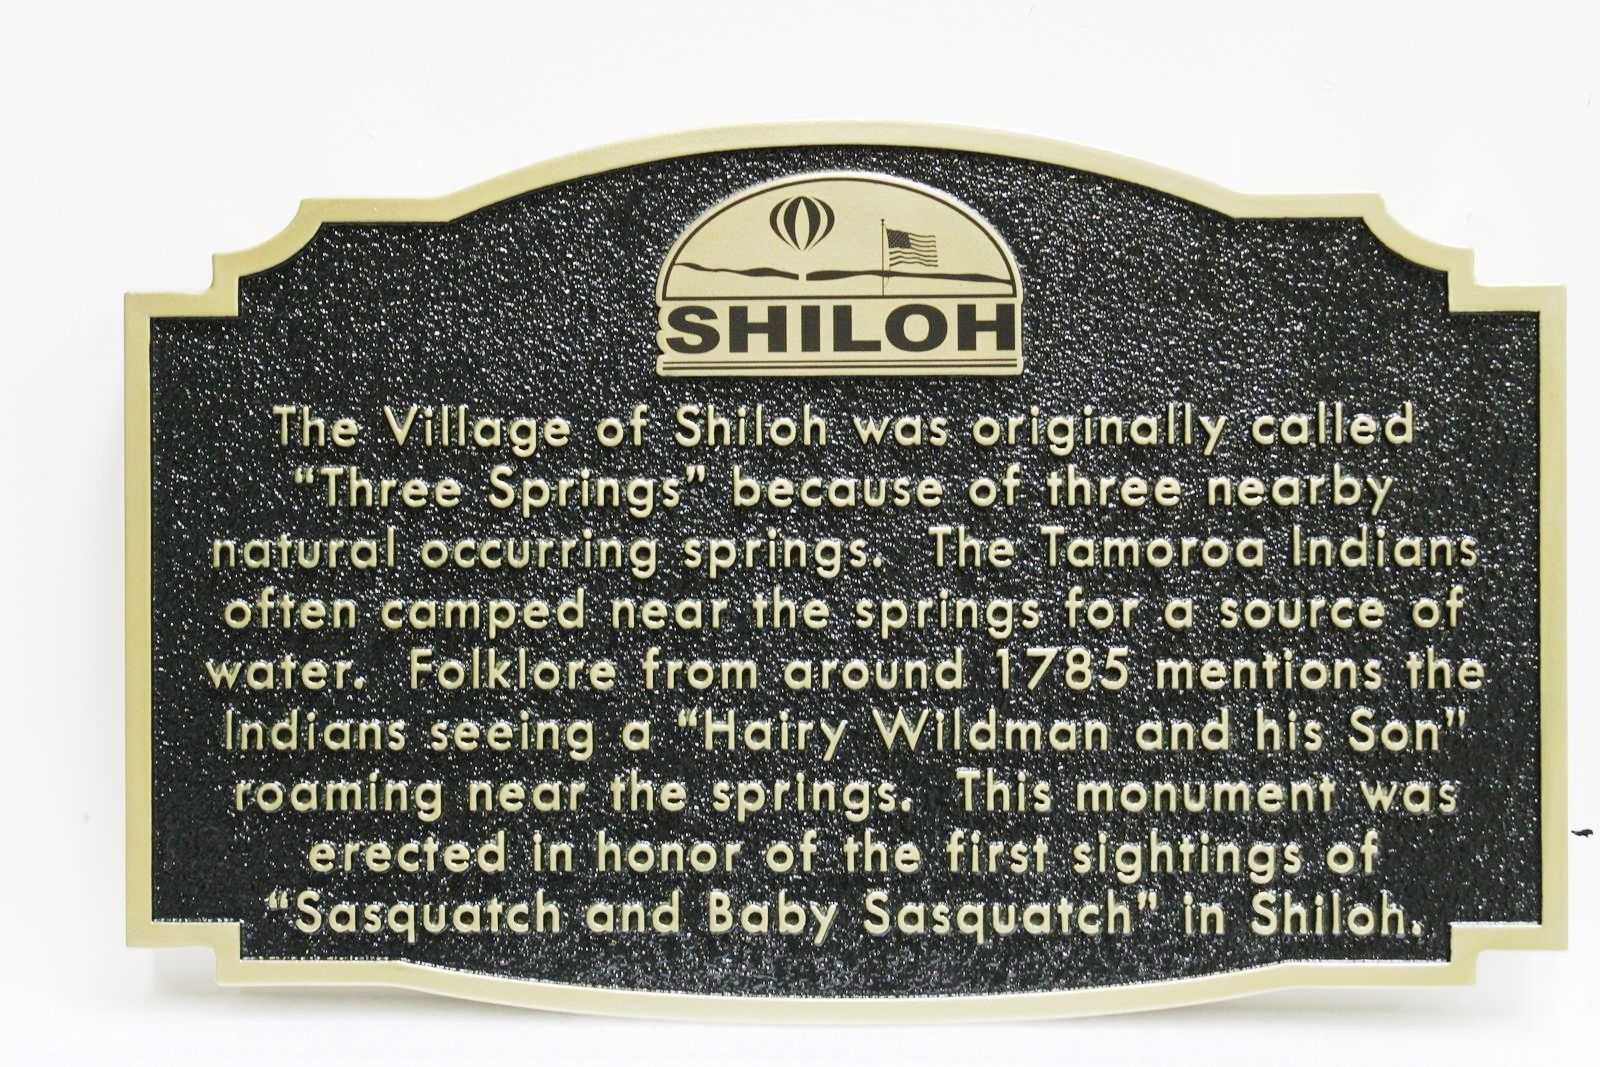 F15902 - Carved and Sandblasted HDU  Historical MarkerSign for the Village of Shiloh